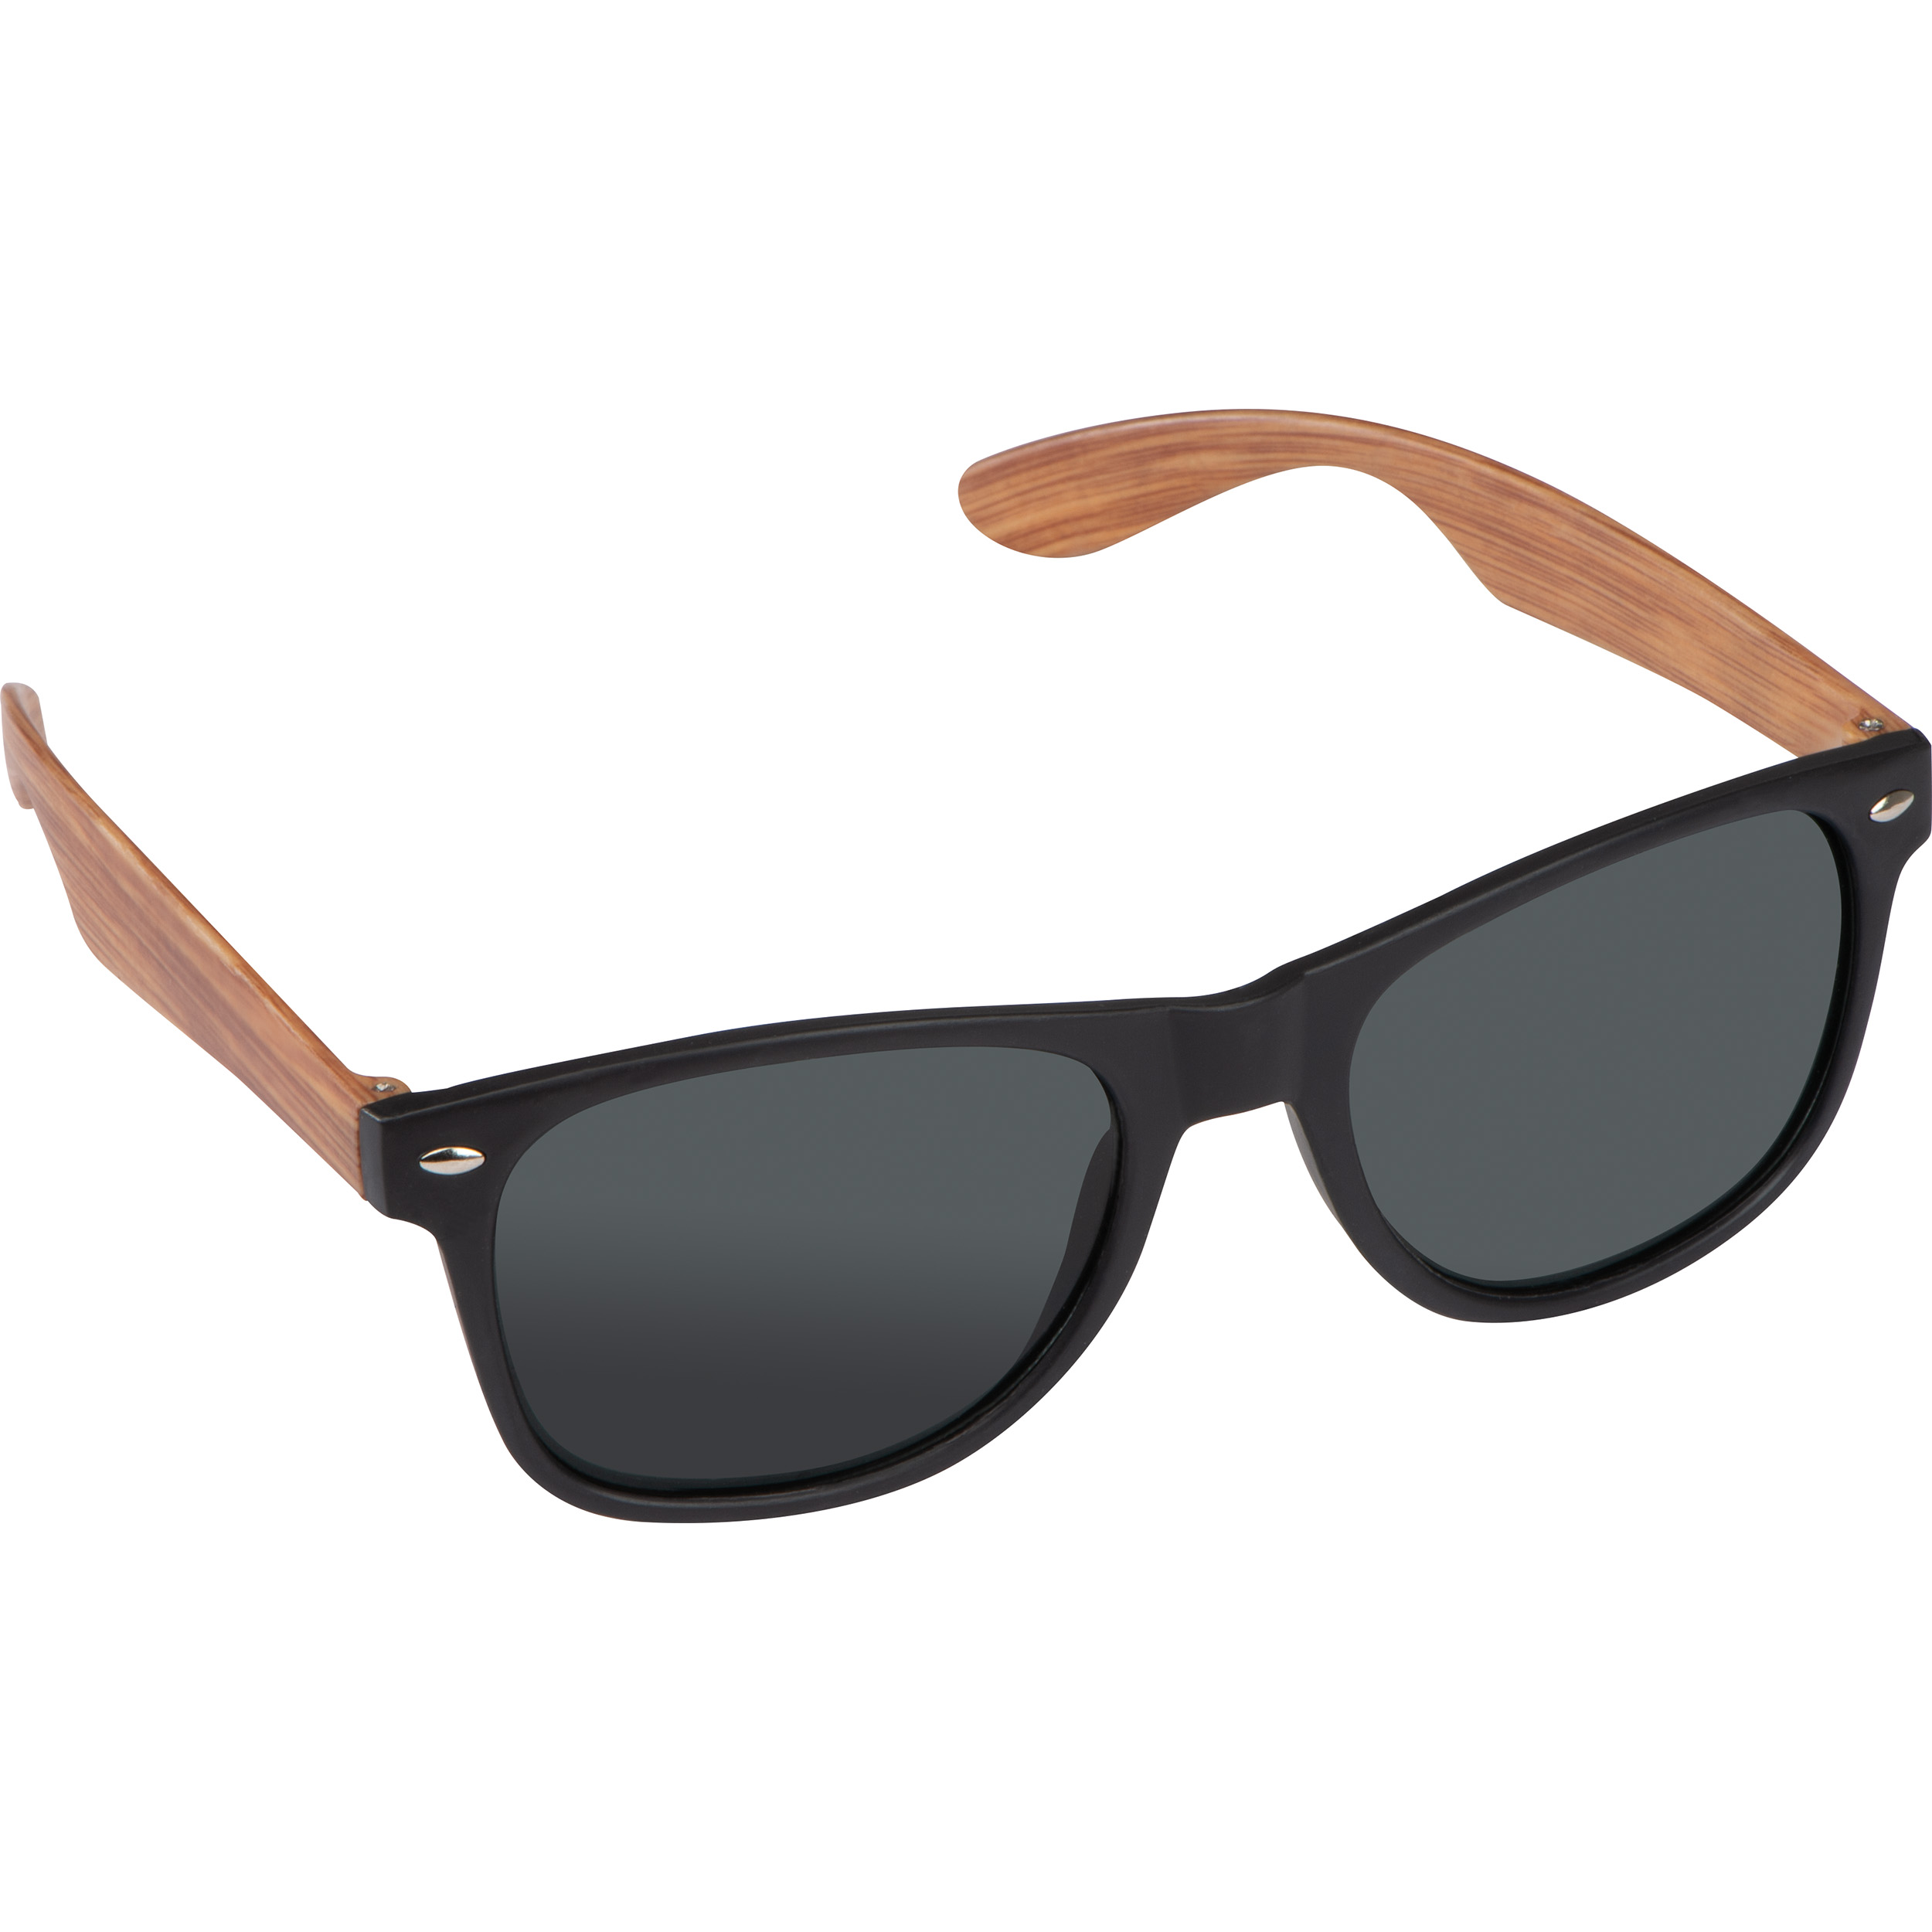 Sunglasses with wooden-look temples